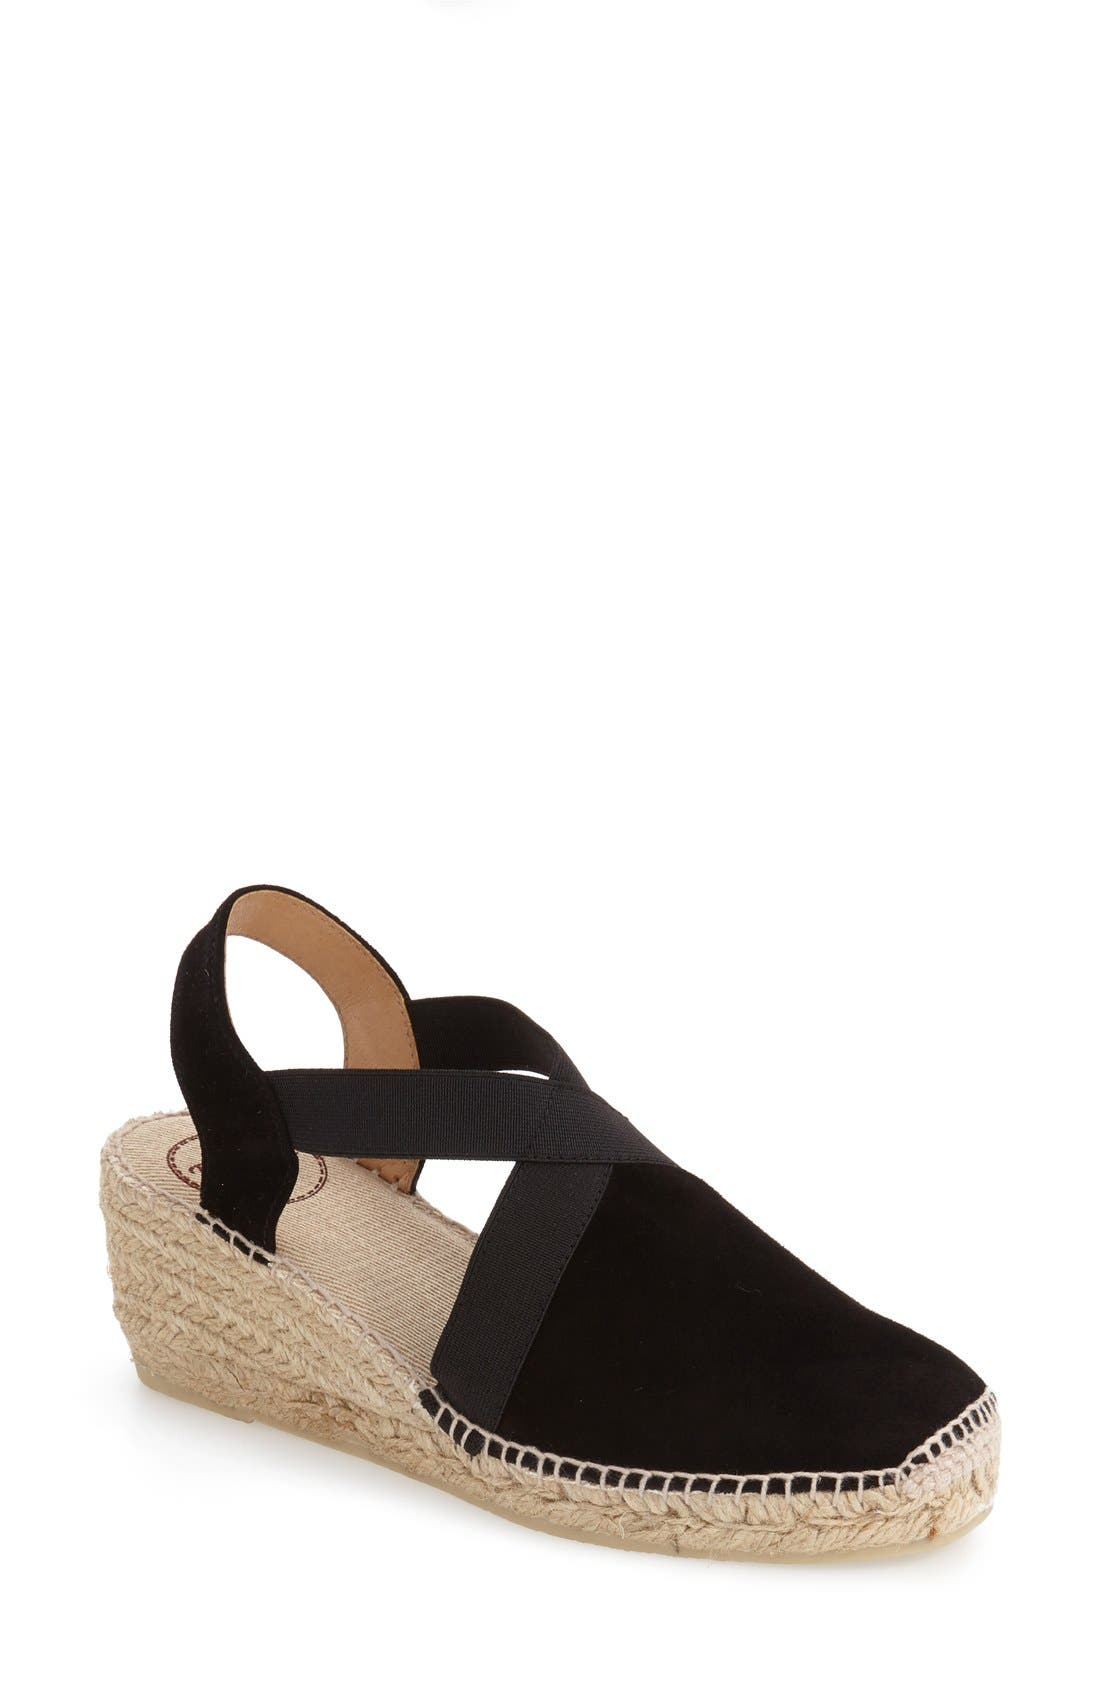 Alternate Image 1 Selected - Toni Pons 'Tona' Espadrille Wedge (Women)